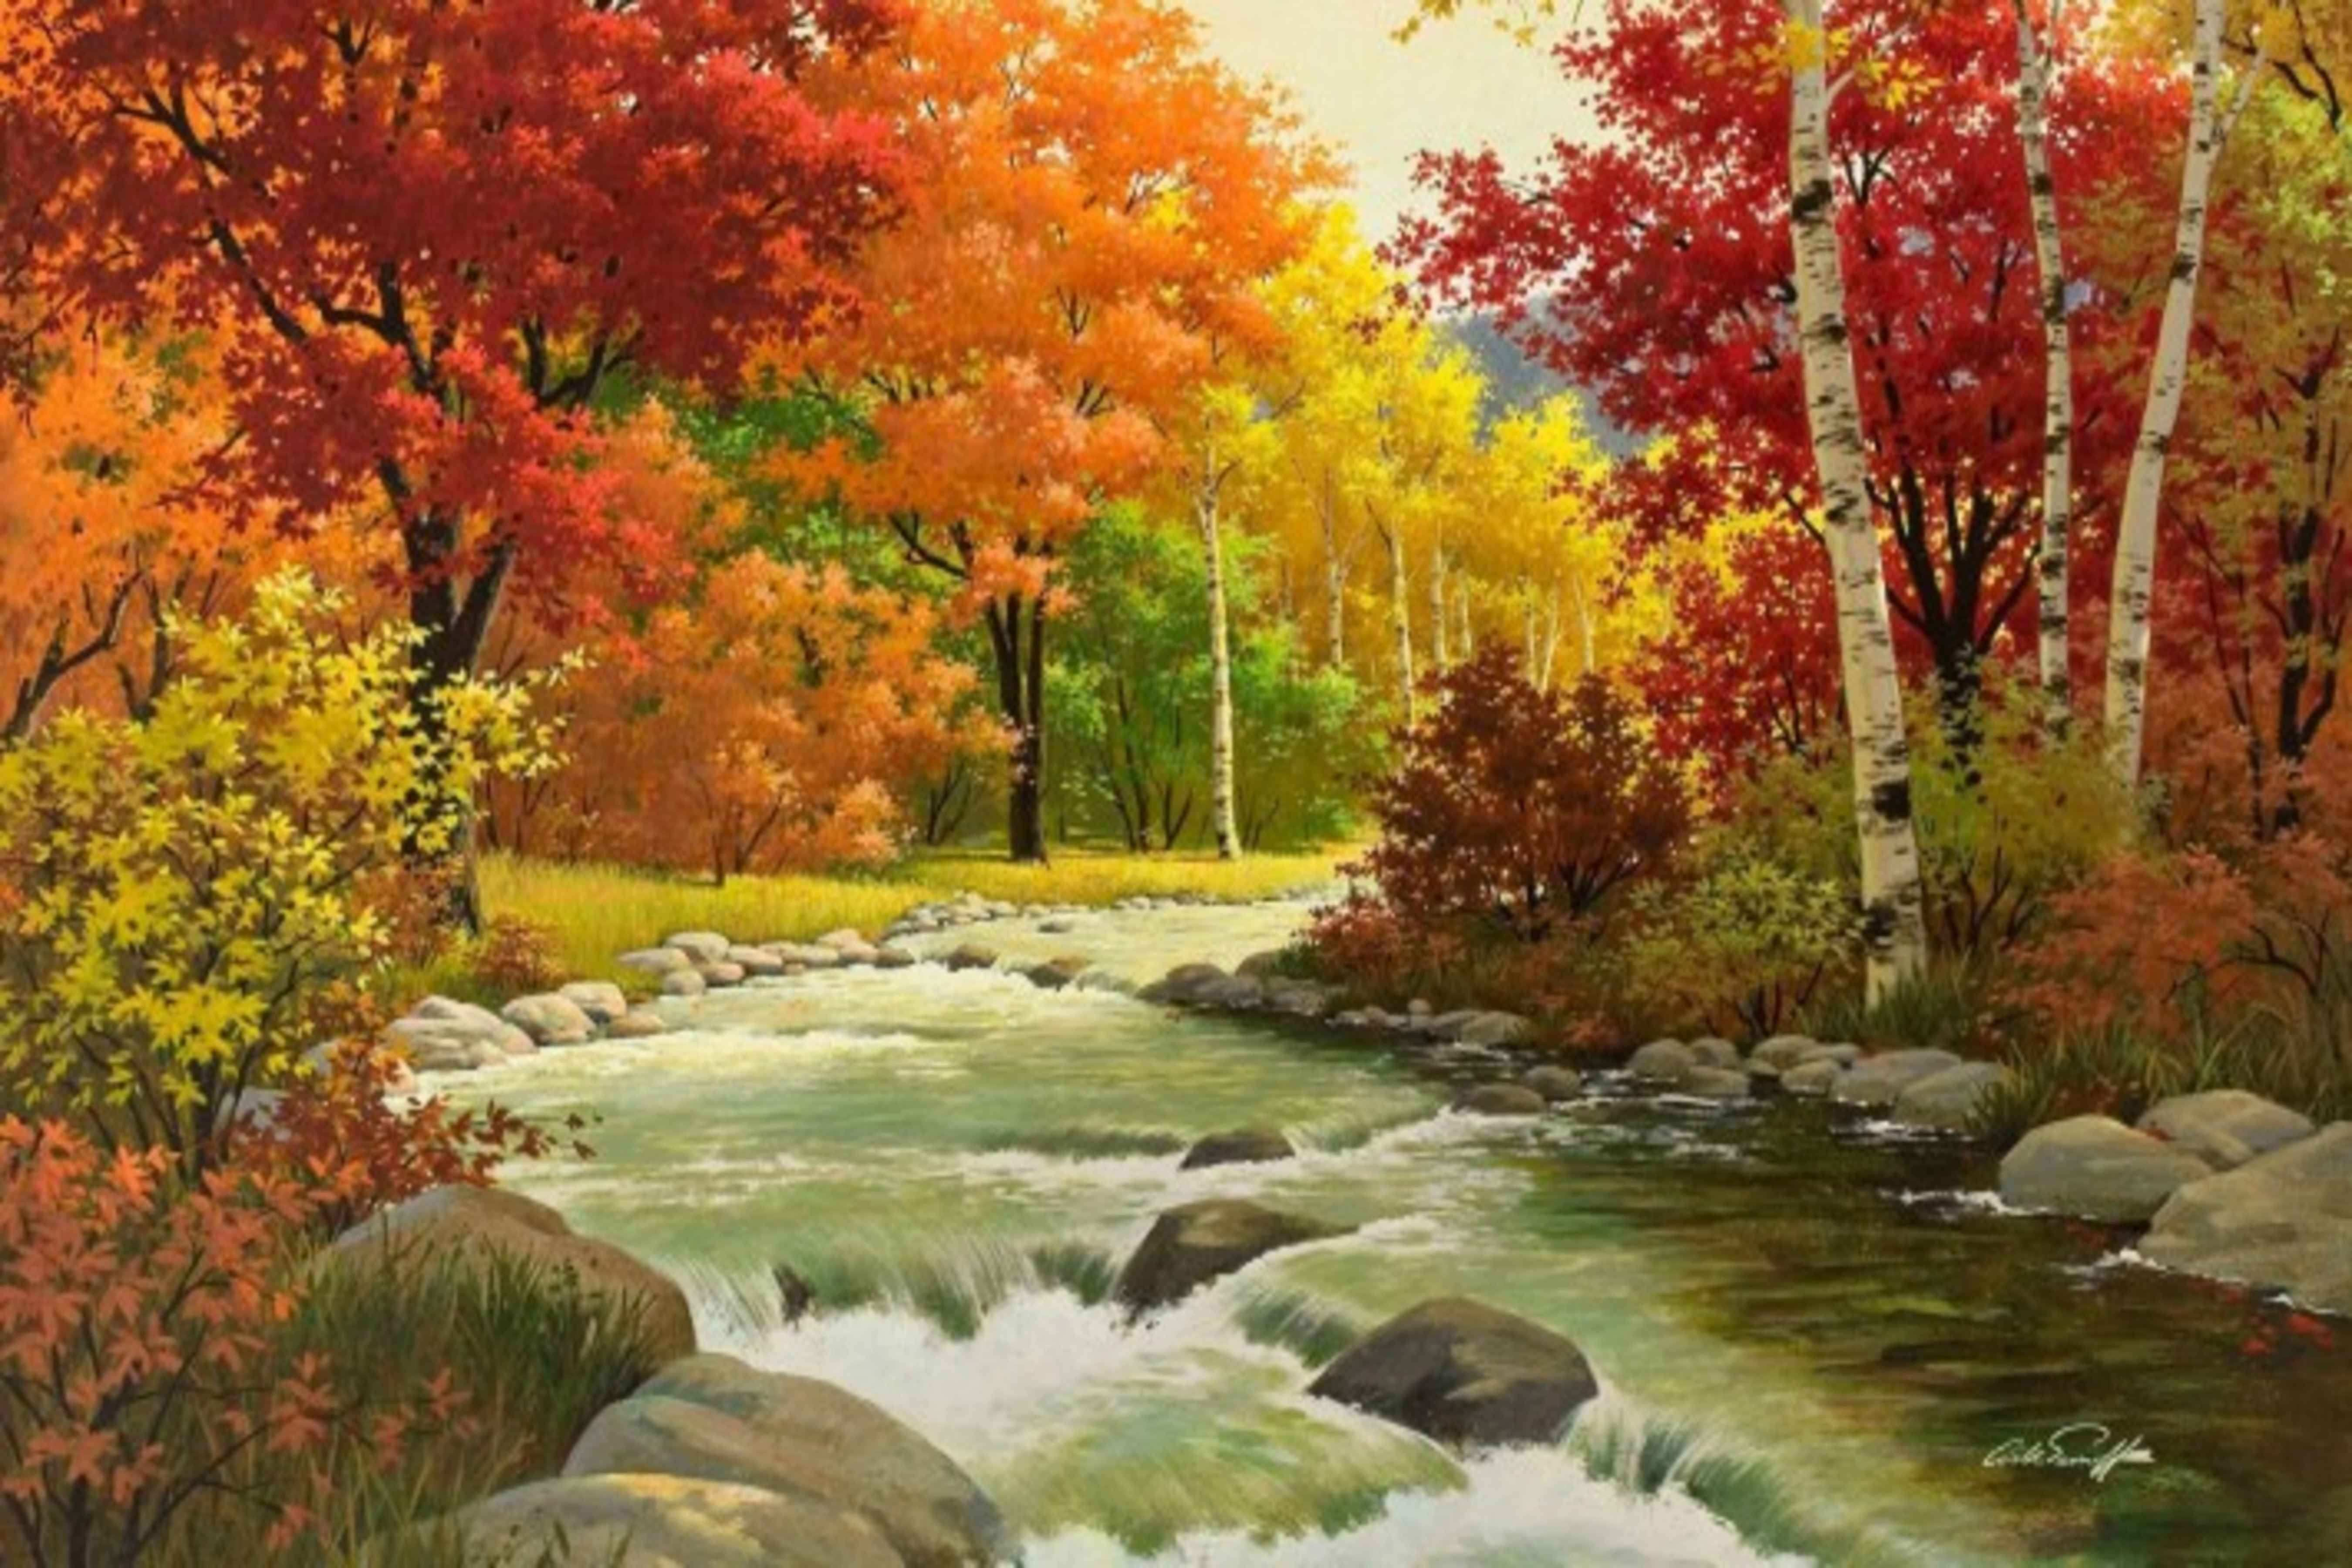 Avikalp Flowing River Nature Fall Scenery Paper Wall Poster Without